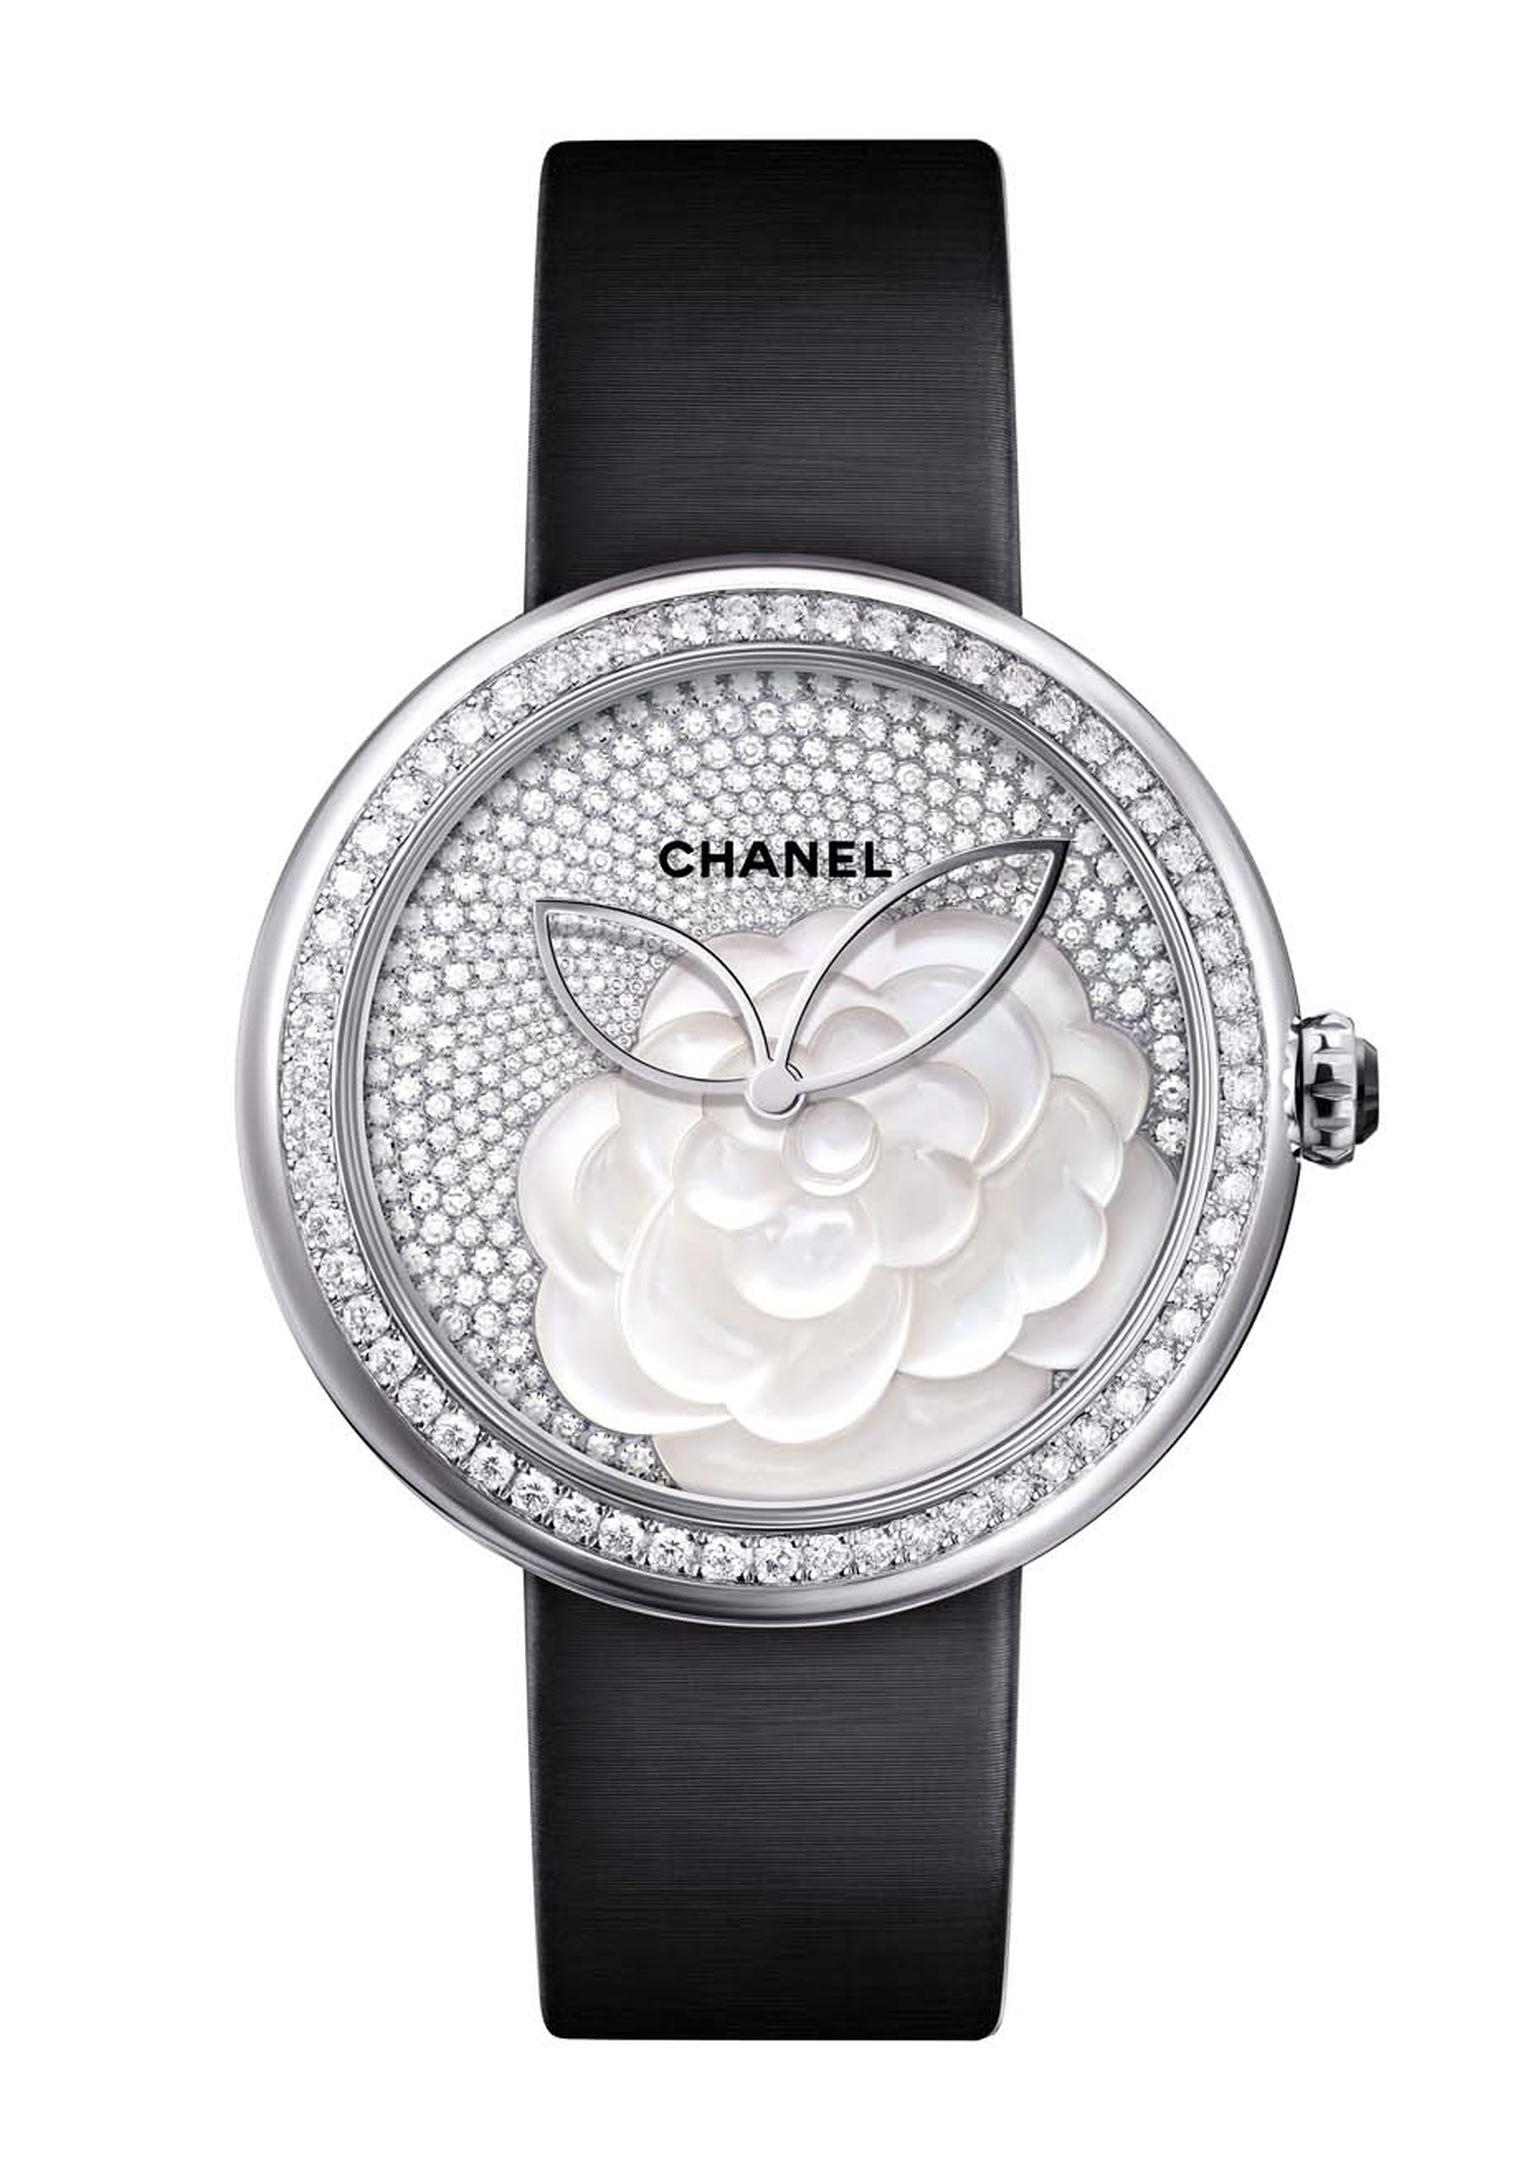 Chanel Mademoiselle Privé Camellia watch features a hand-crafted camellia flower on the dial. The layered mother-of-pearl discs create a billowing flower, which is then surrounded by 330 brilliant-cut diamonds, giving this perfect Mother's Day gift that e